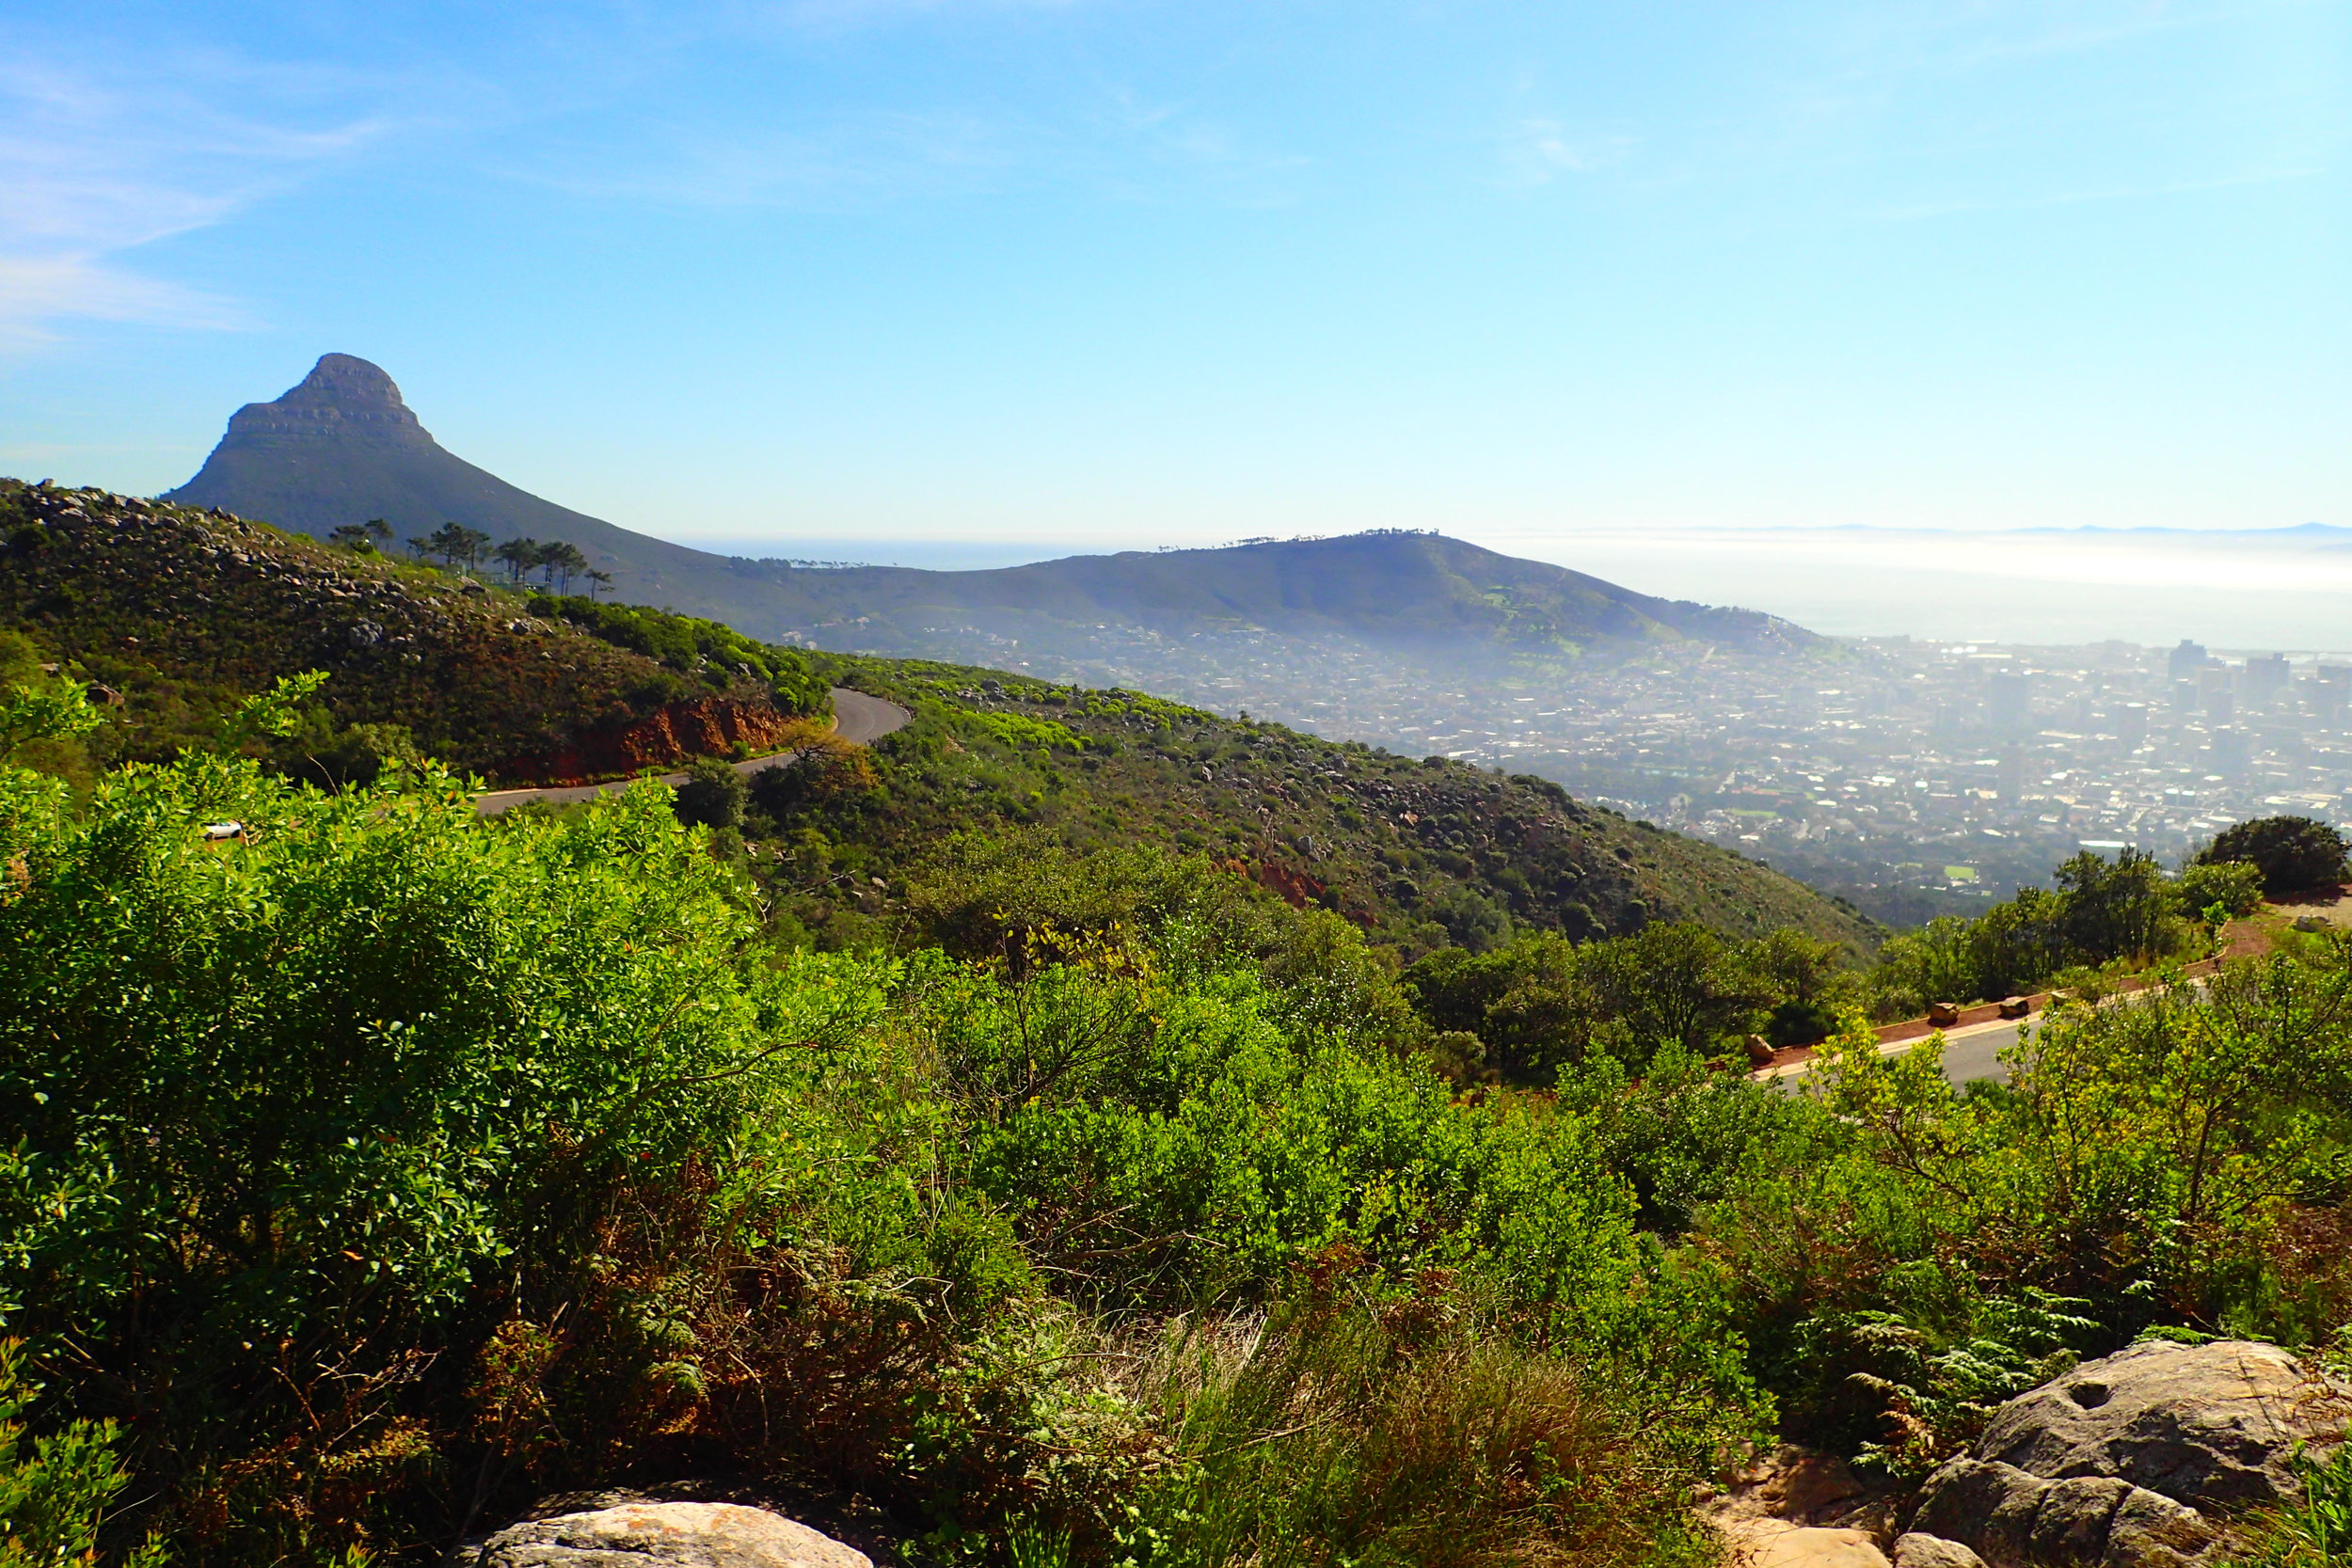 View from bottom of trail of Cape Town, Lion's Head, Signal Hill and ocean beyond